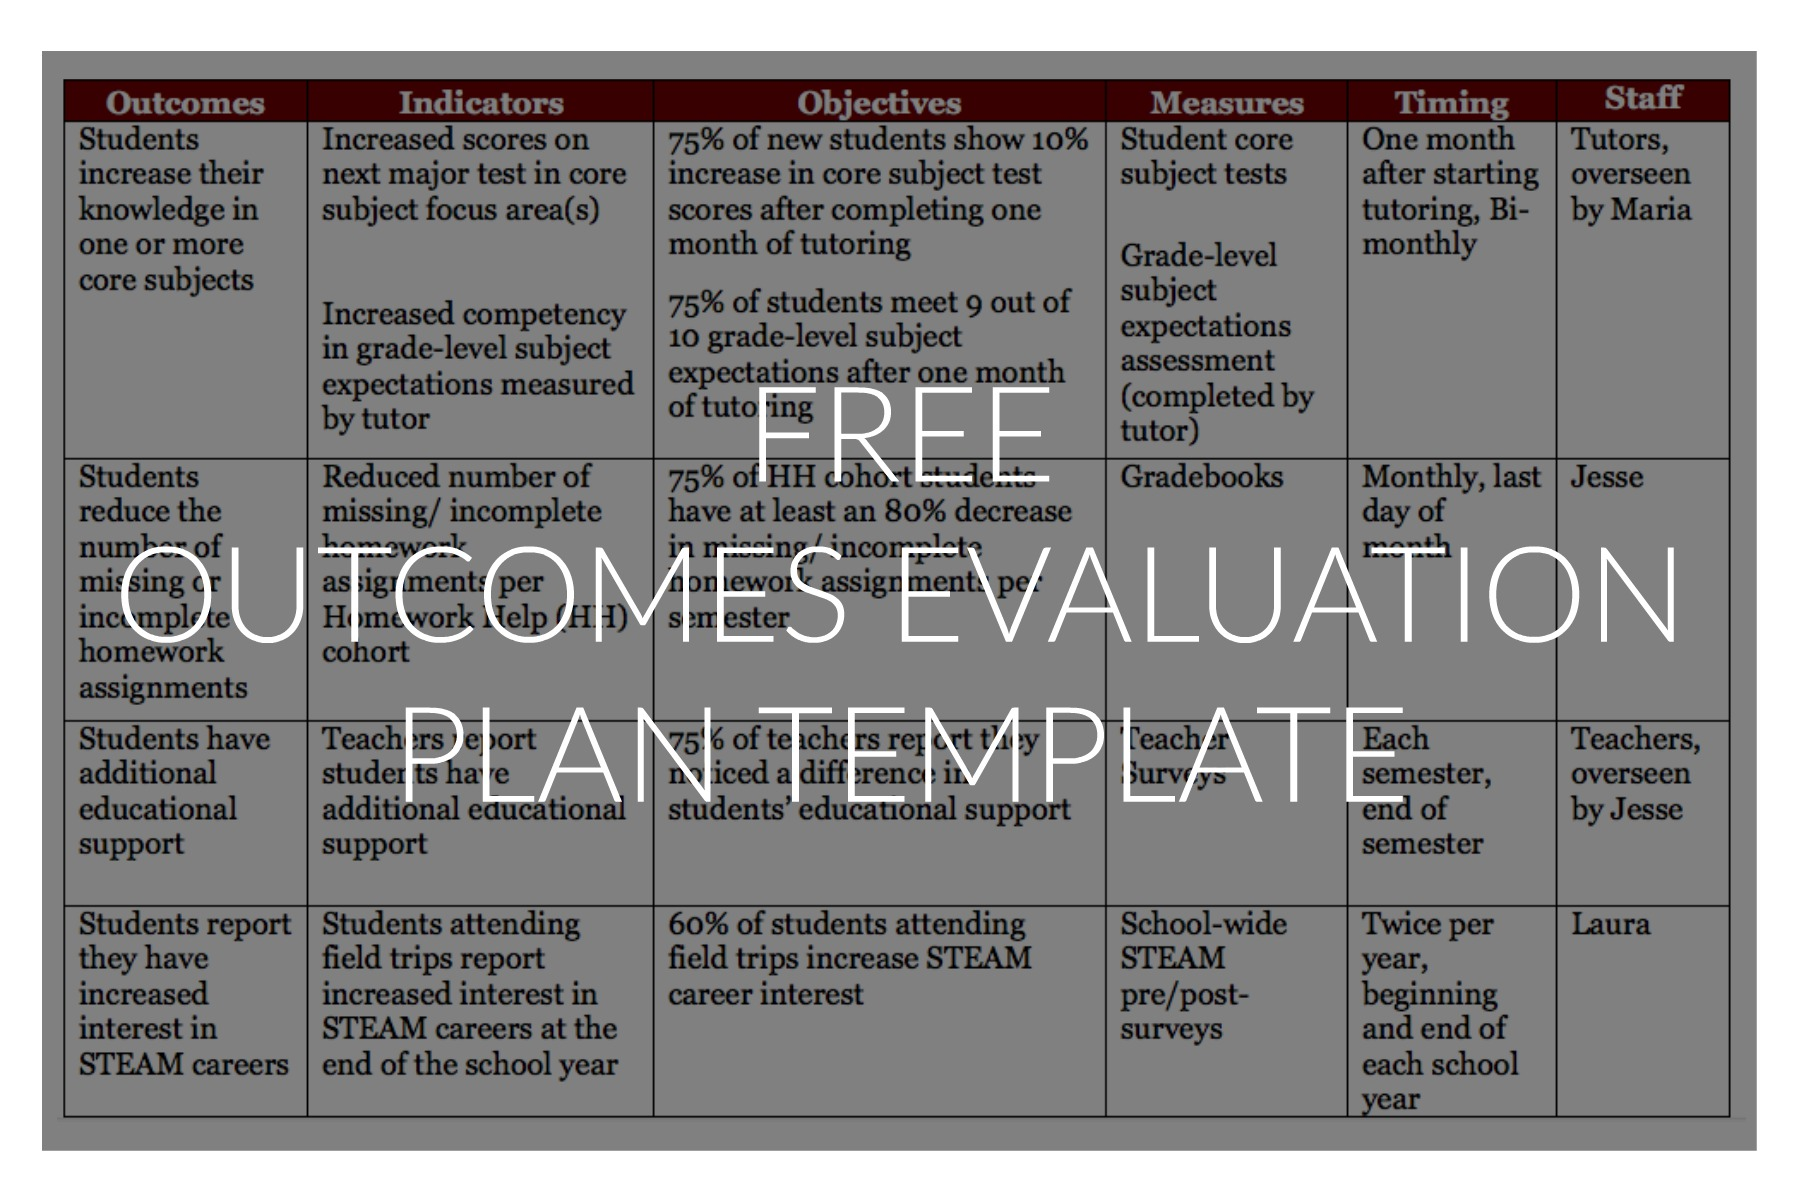 outcome eval plan template pictures.jpg